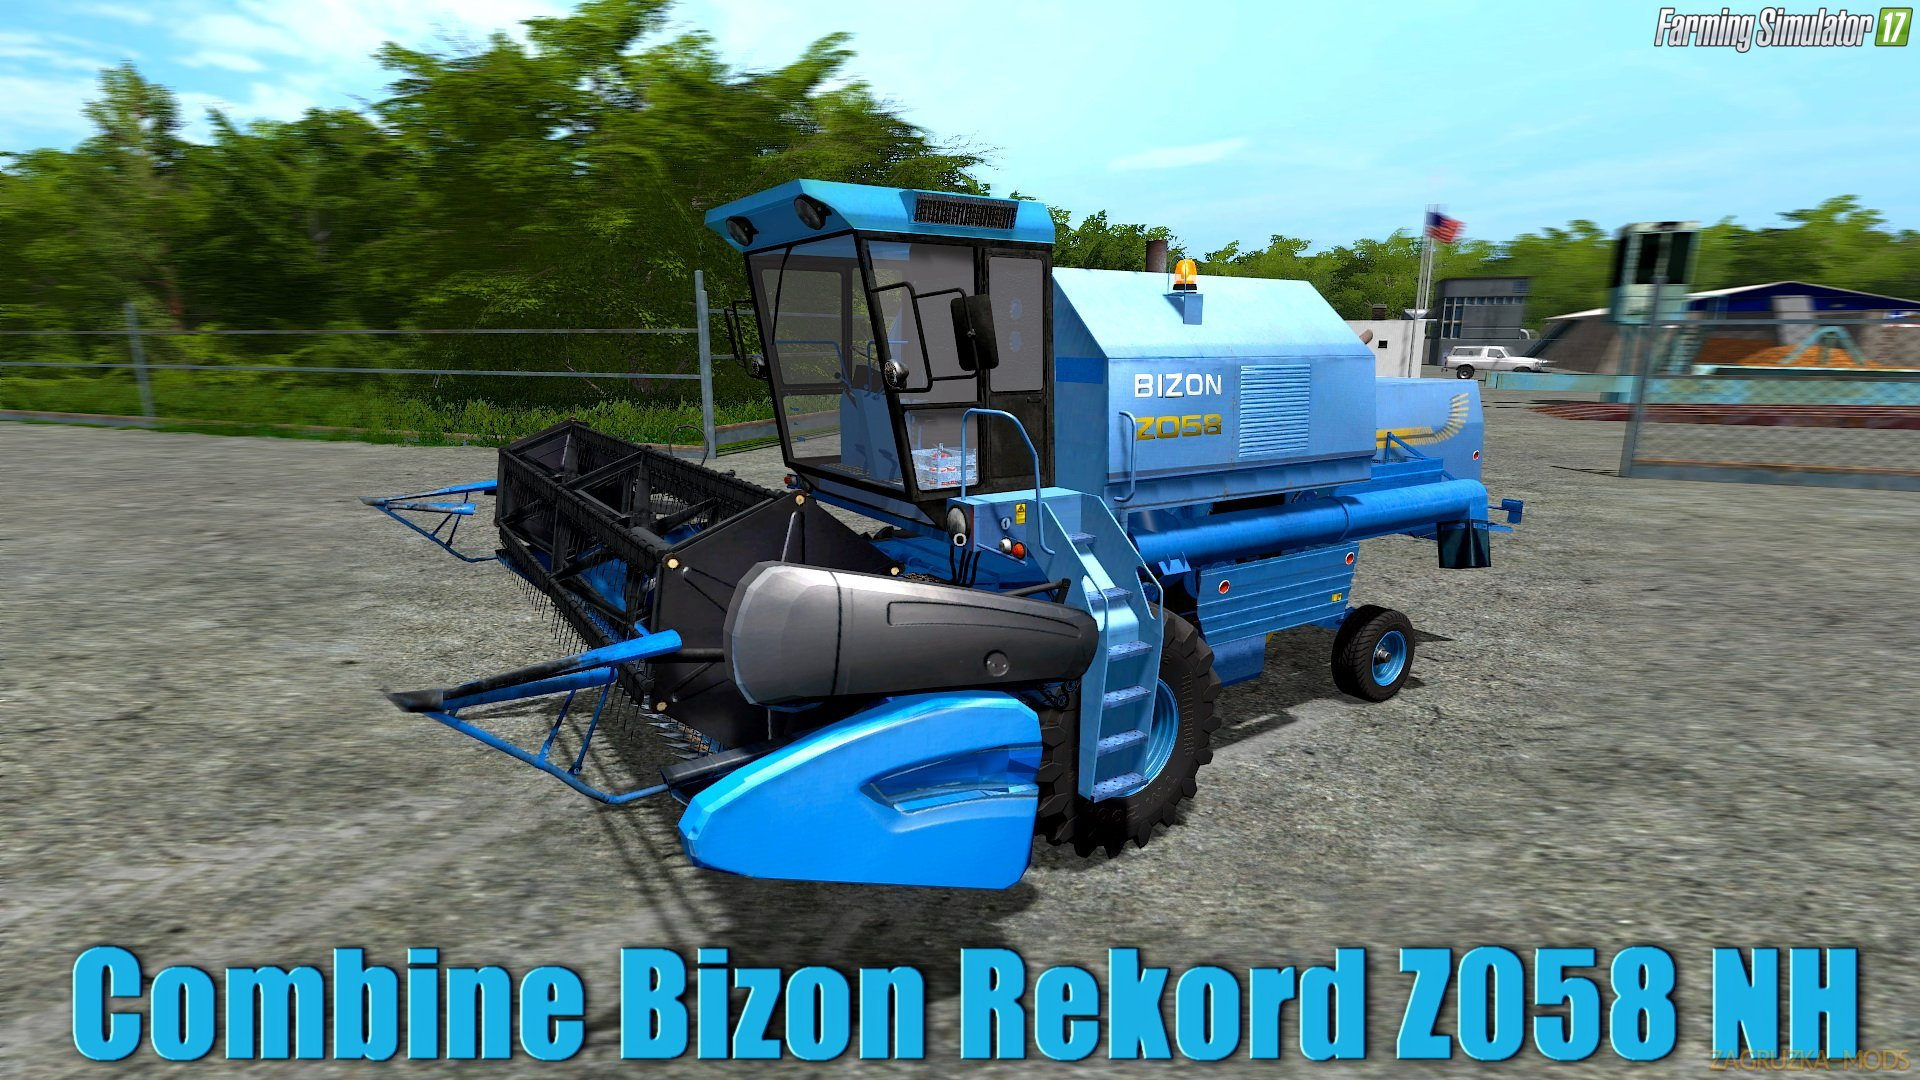 Bizon Rekord Z058 NH v1.0 for FS 17